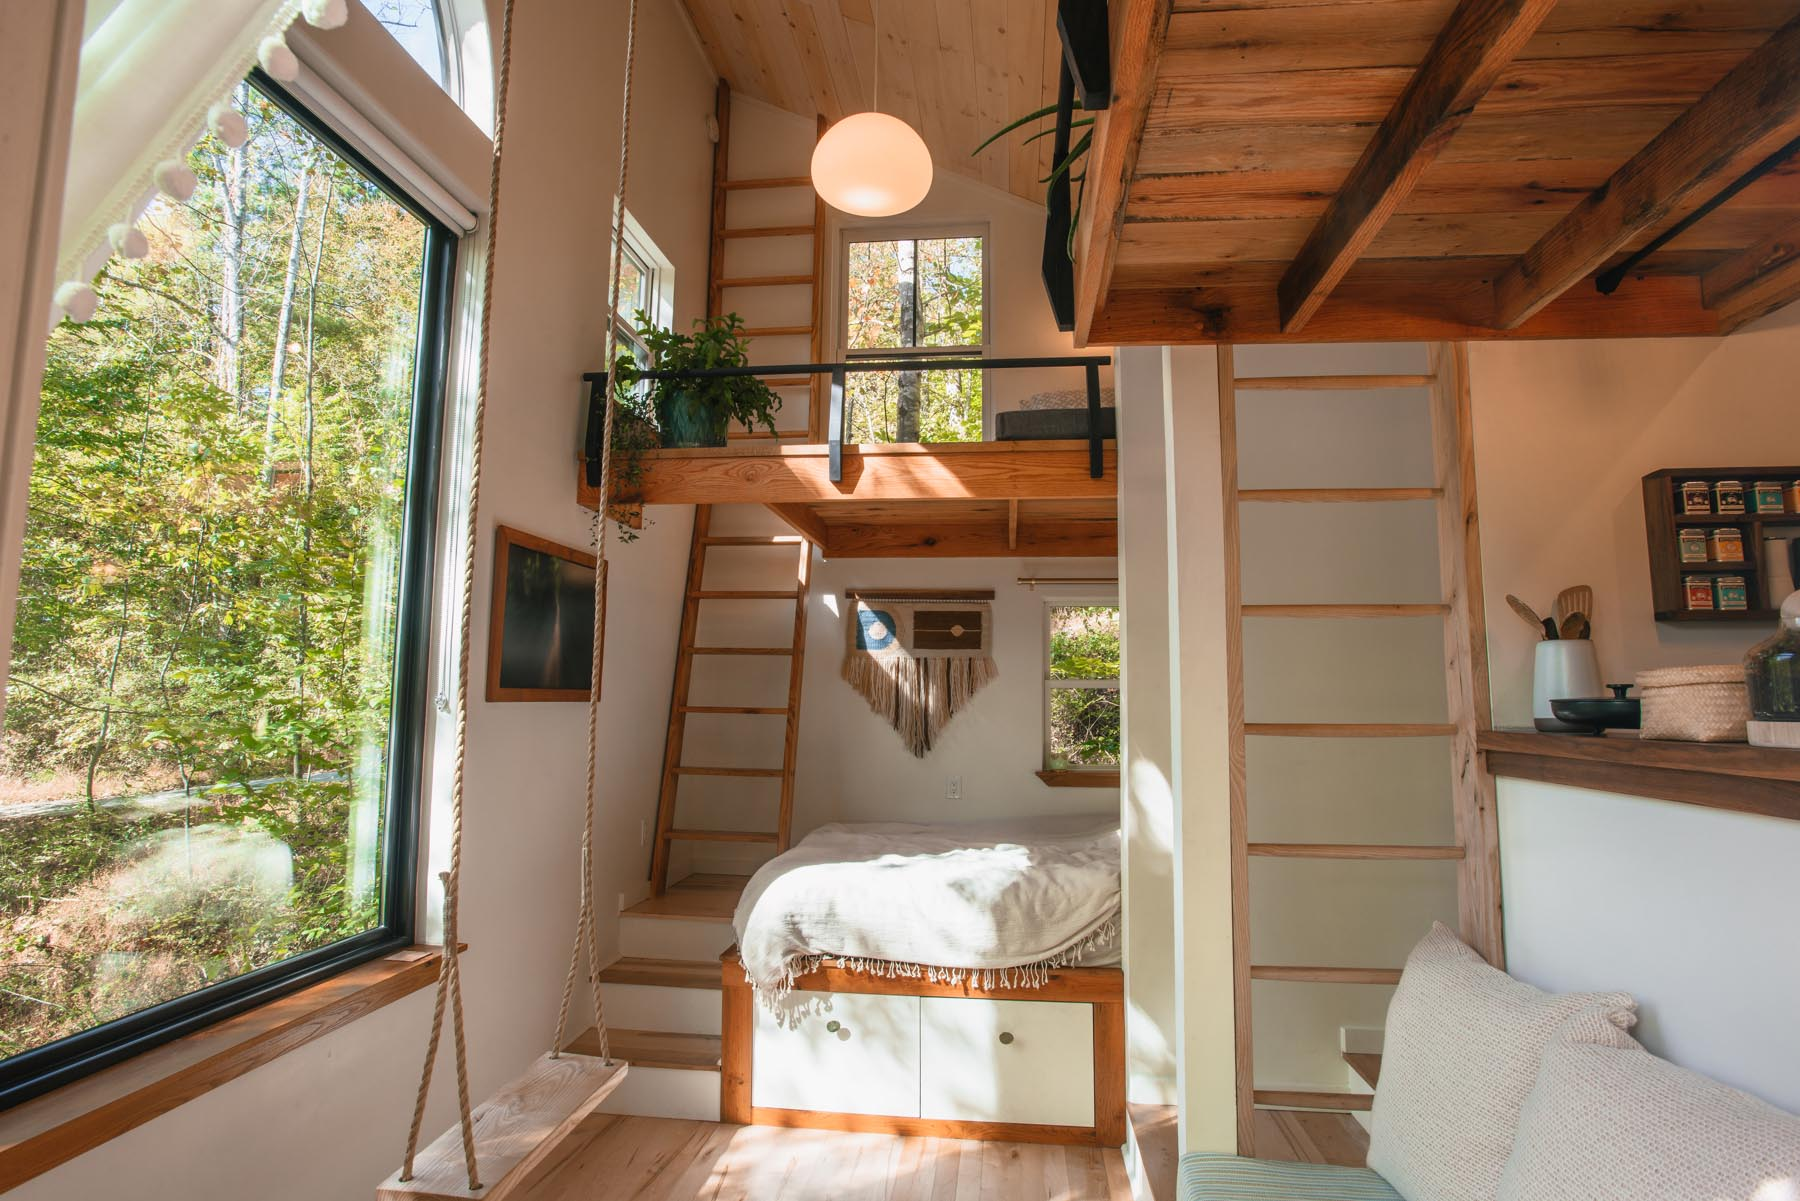 A small house with a reading loft